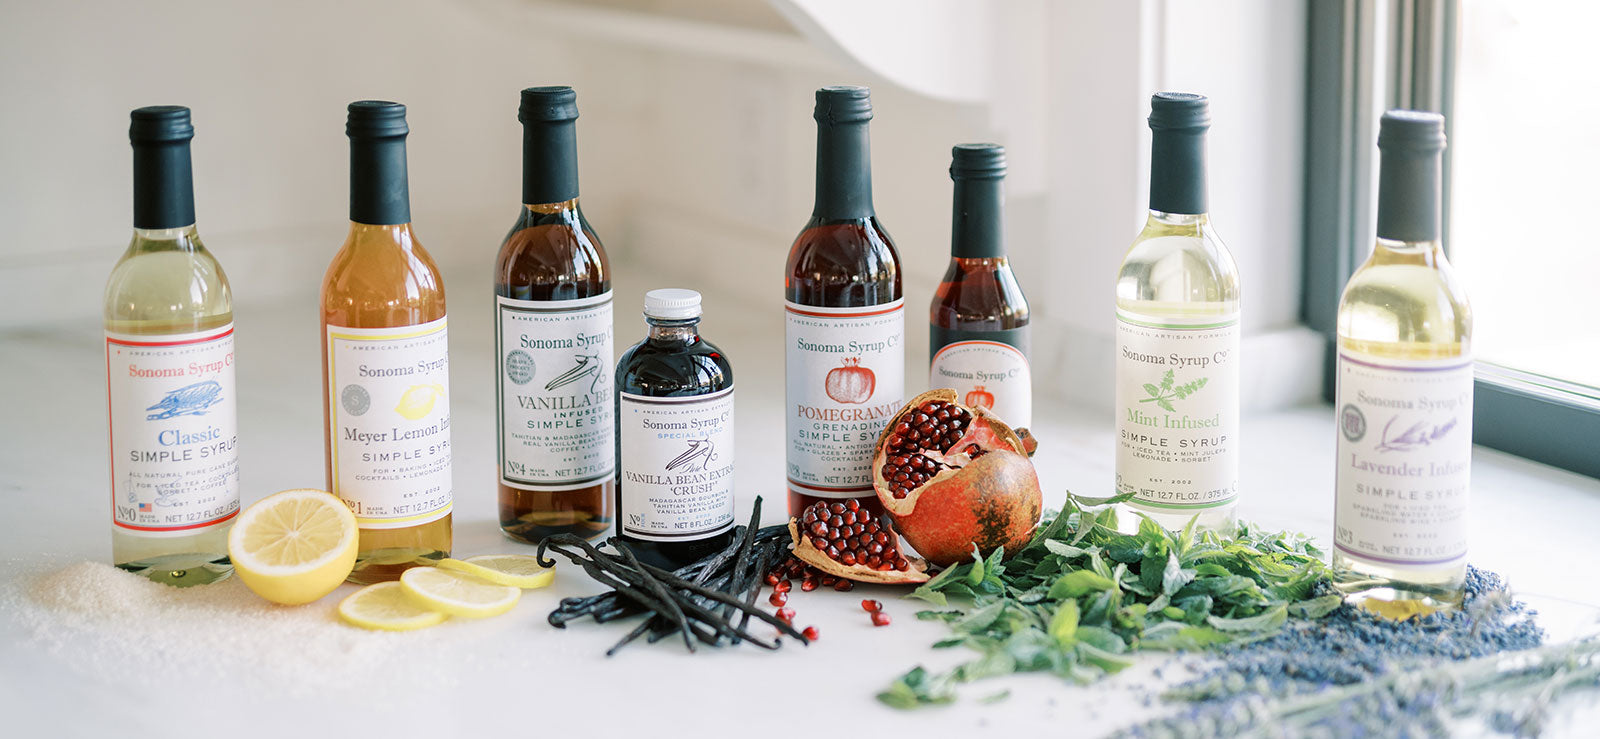 Sonoma Syrup Co. Product Family